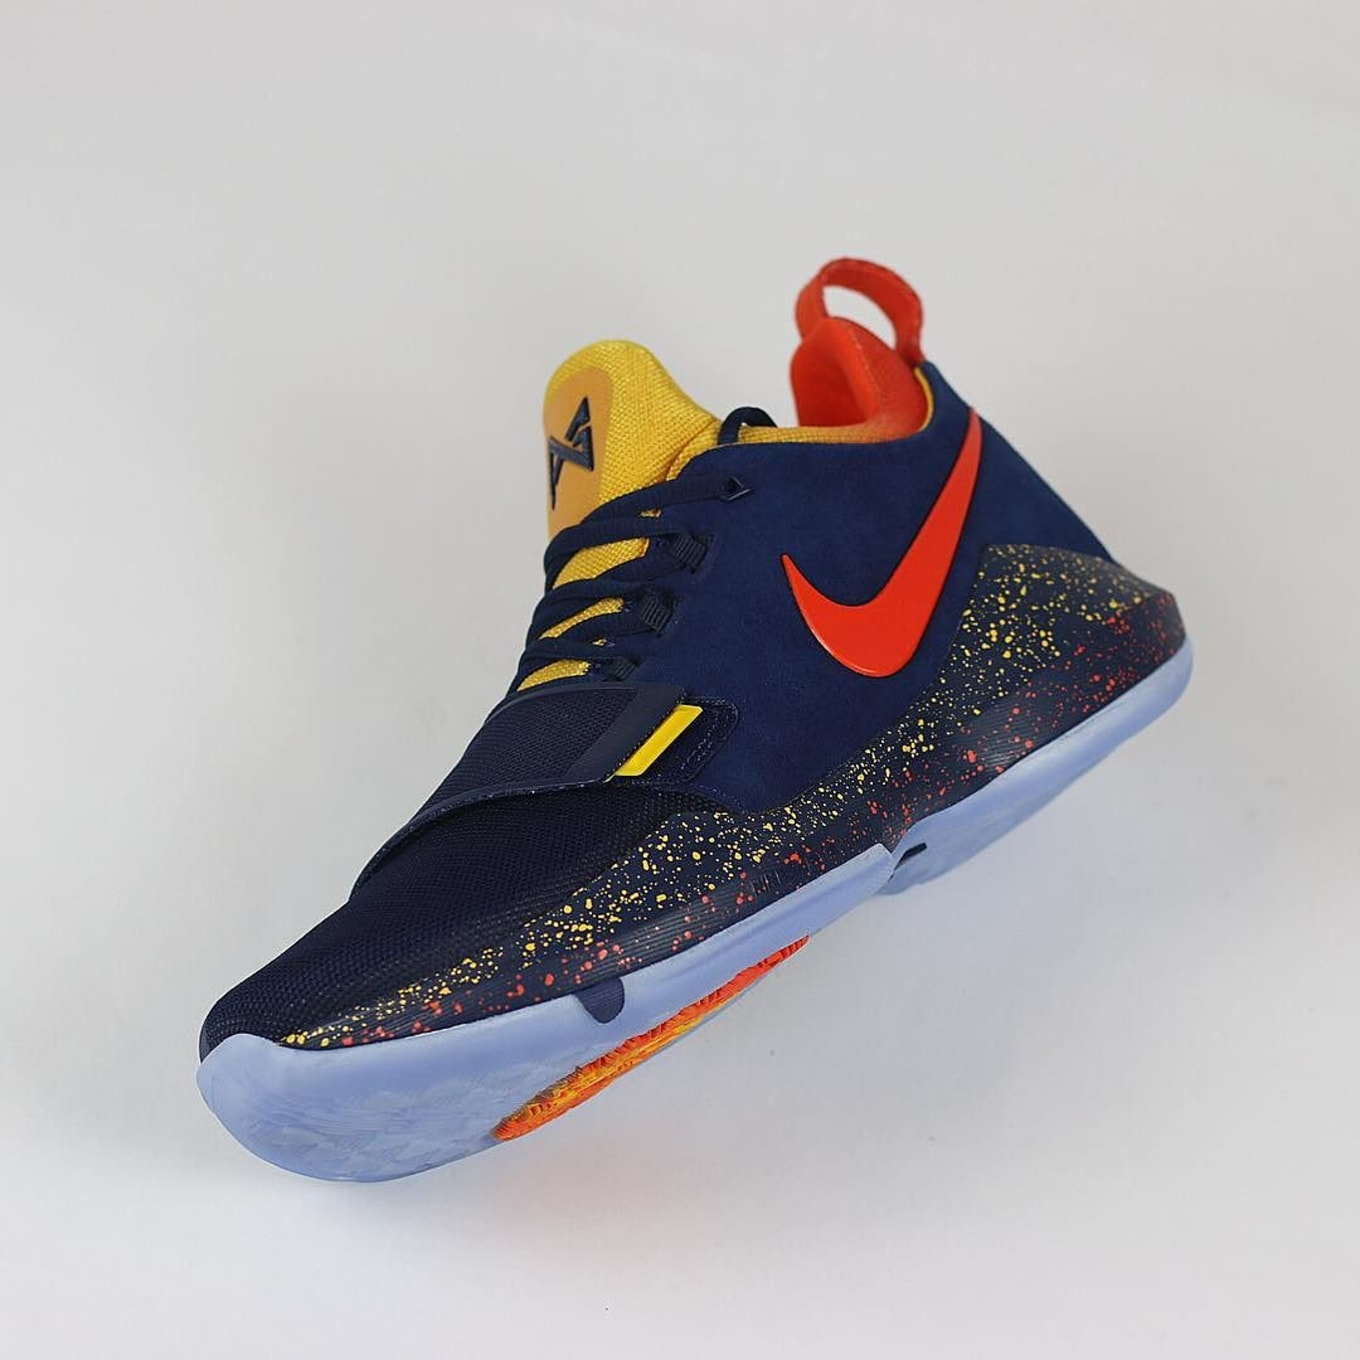 94edb1494c6 Another Fishing-Inspired Nike PG1 for Paul George